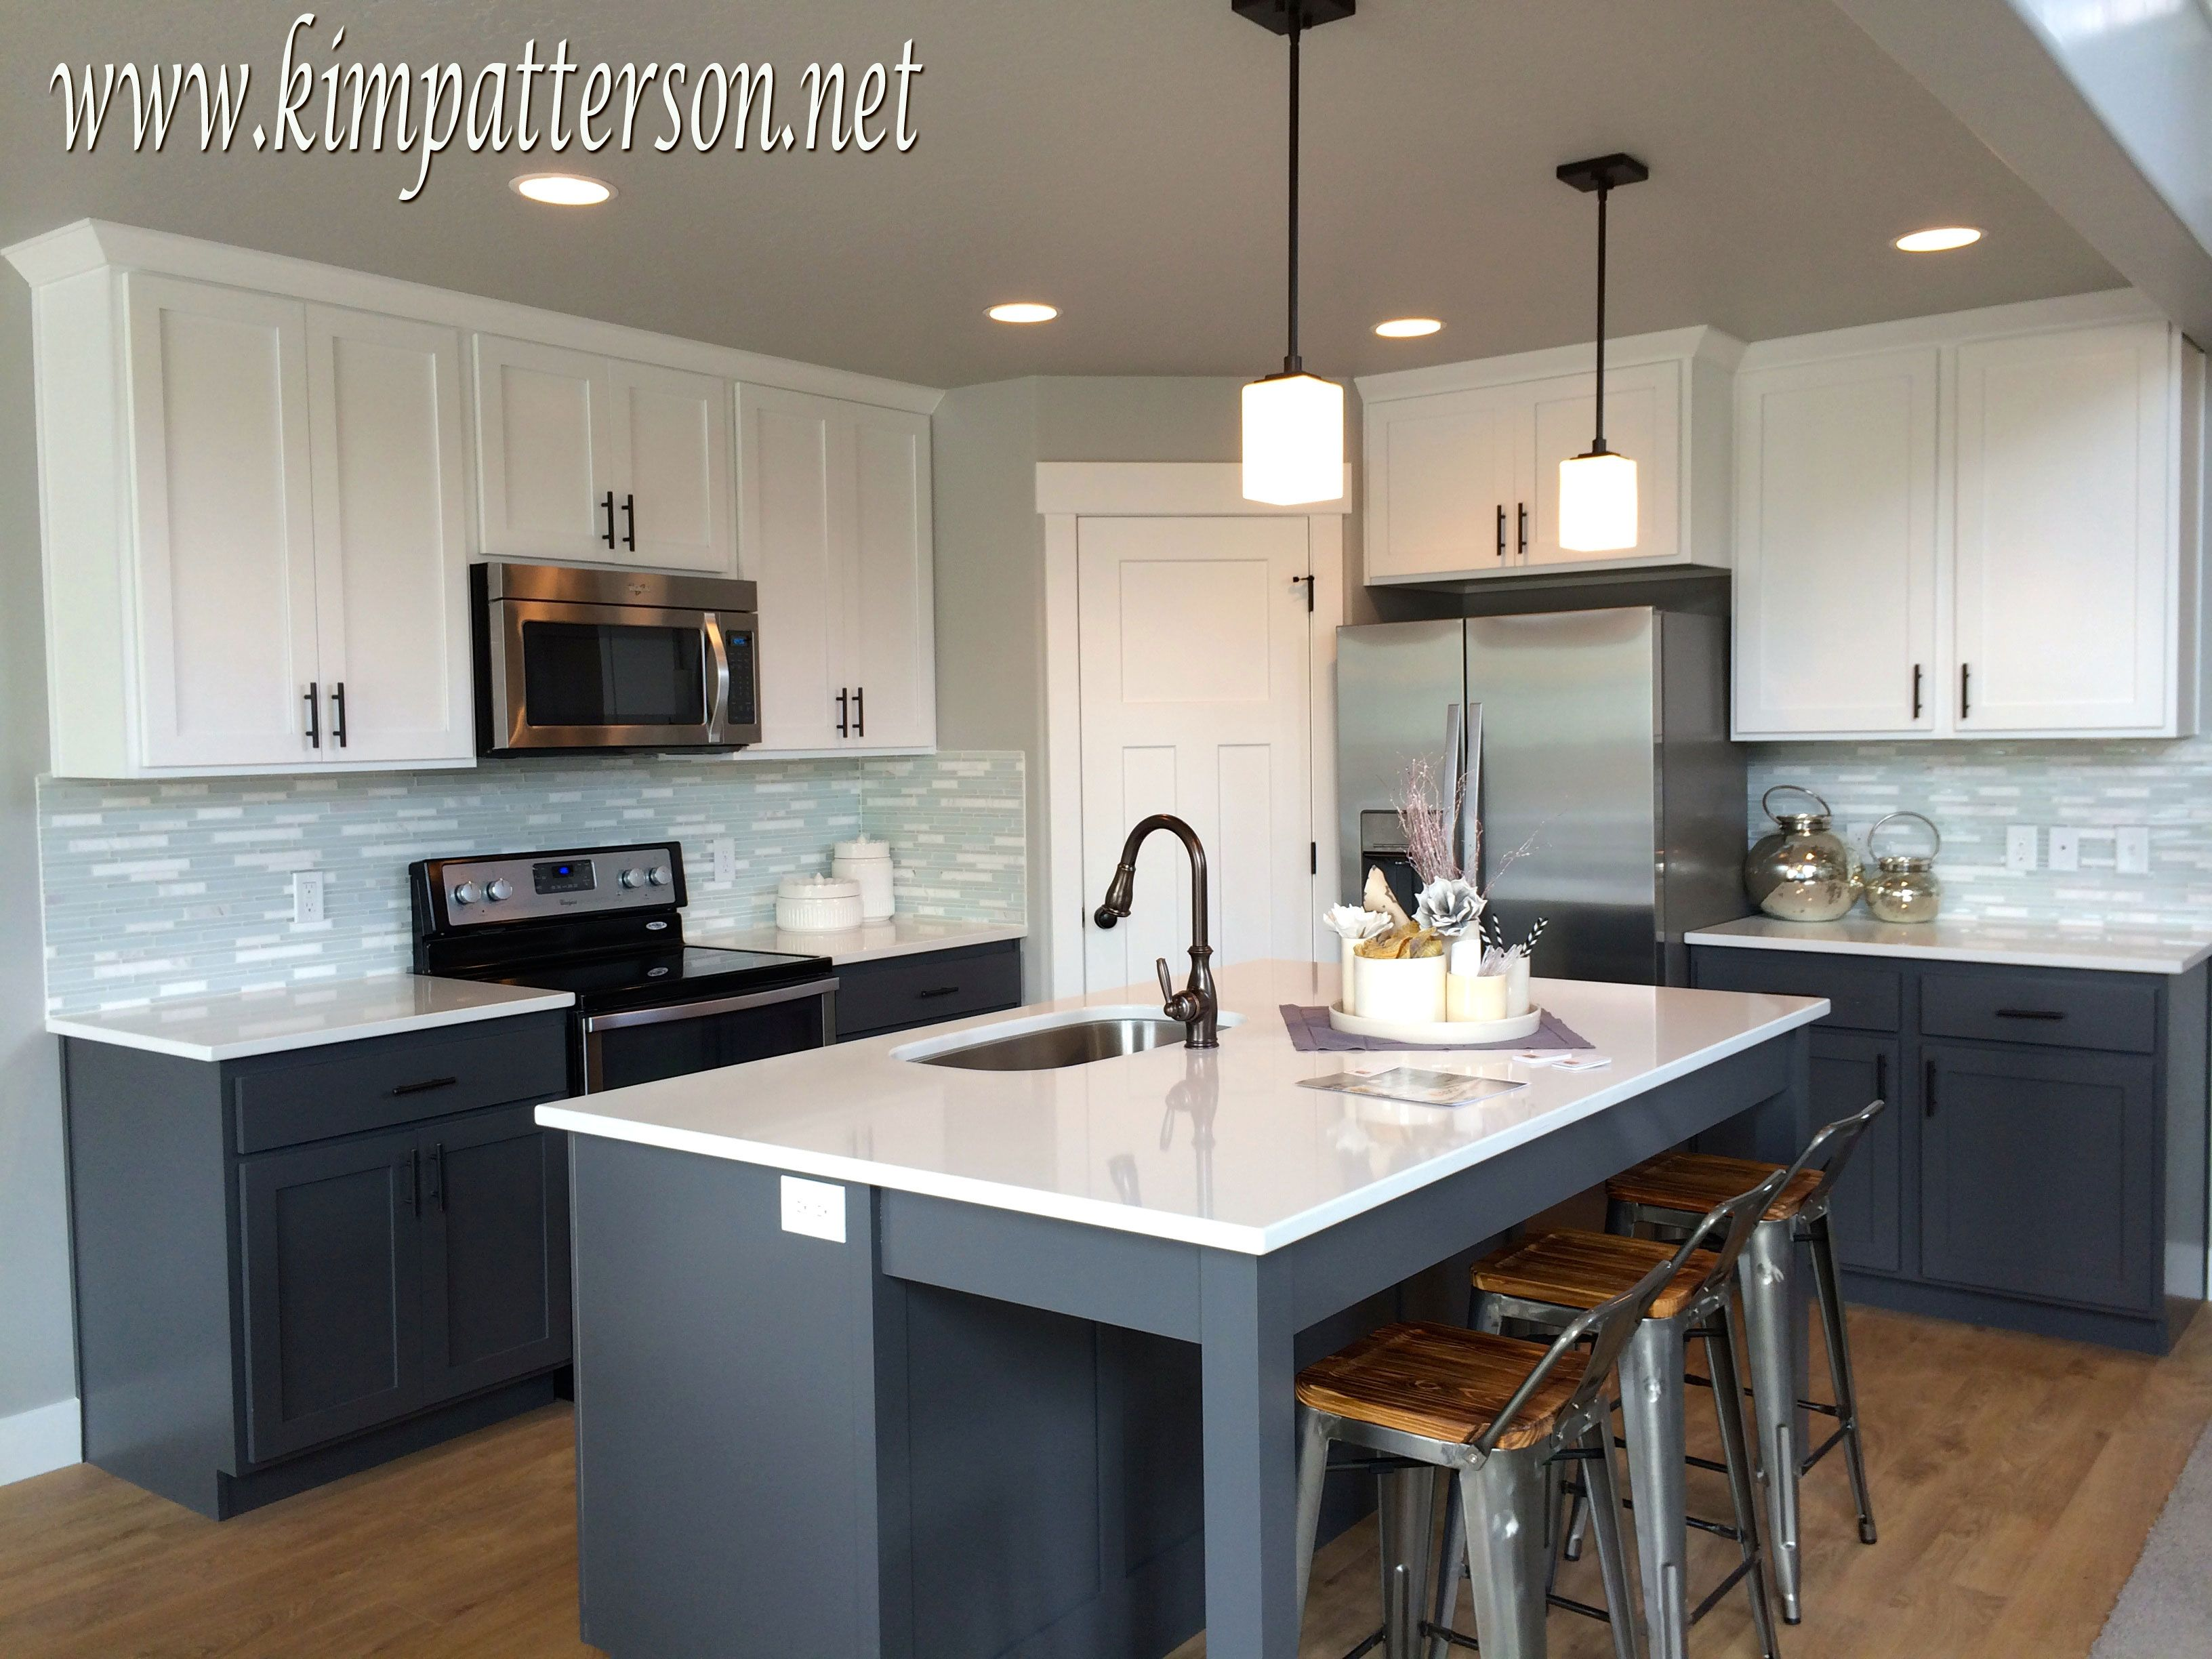 Kitchen Cabinets For Sale London Kitchen Antique White Cabinets With Black Appliances Grey